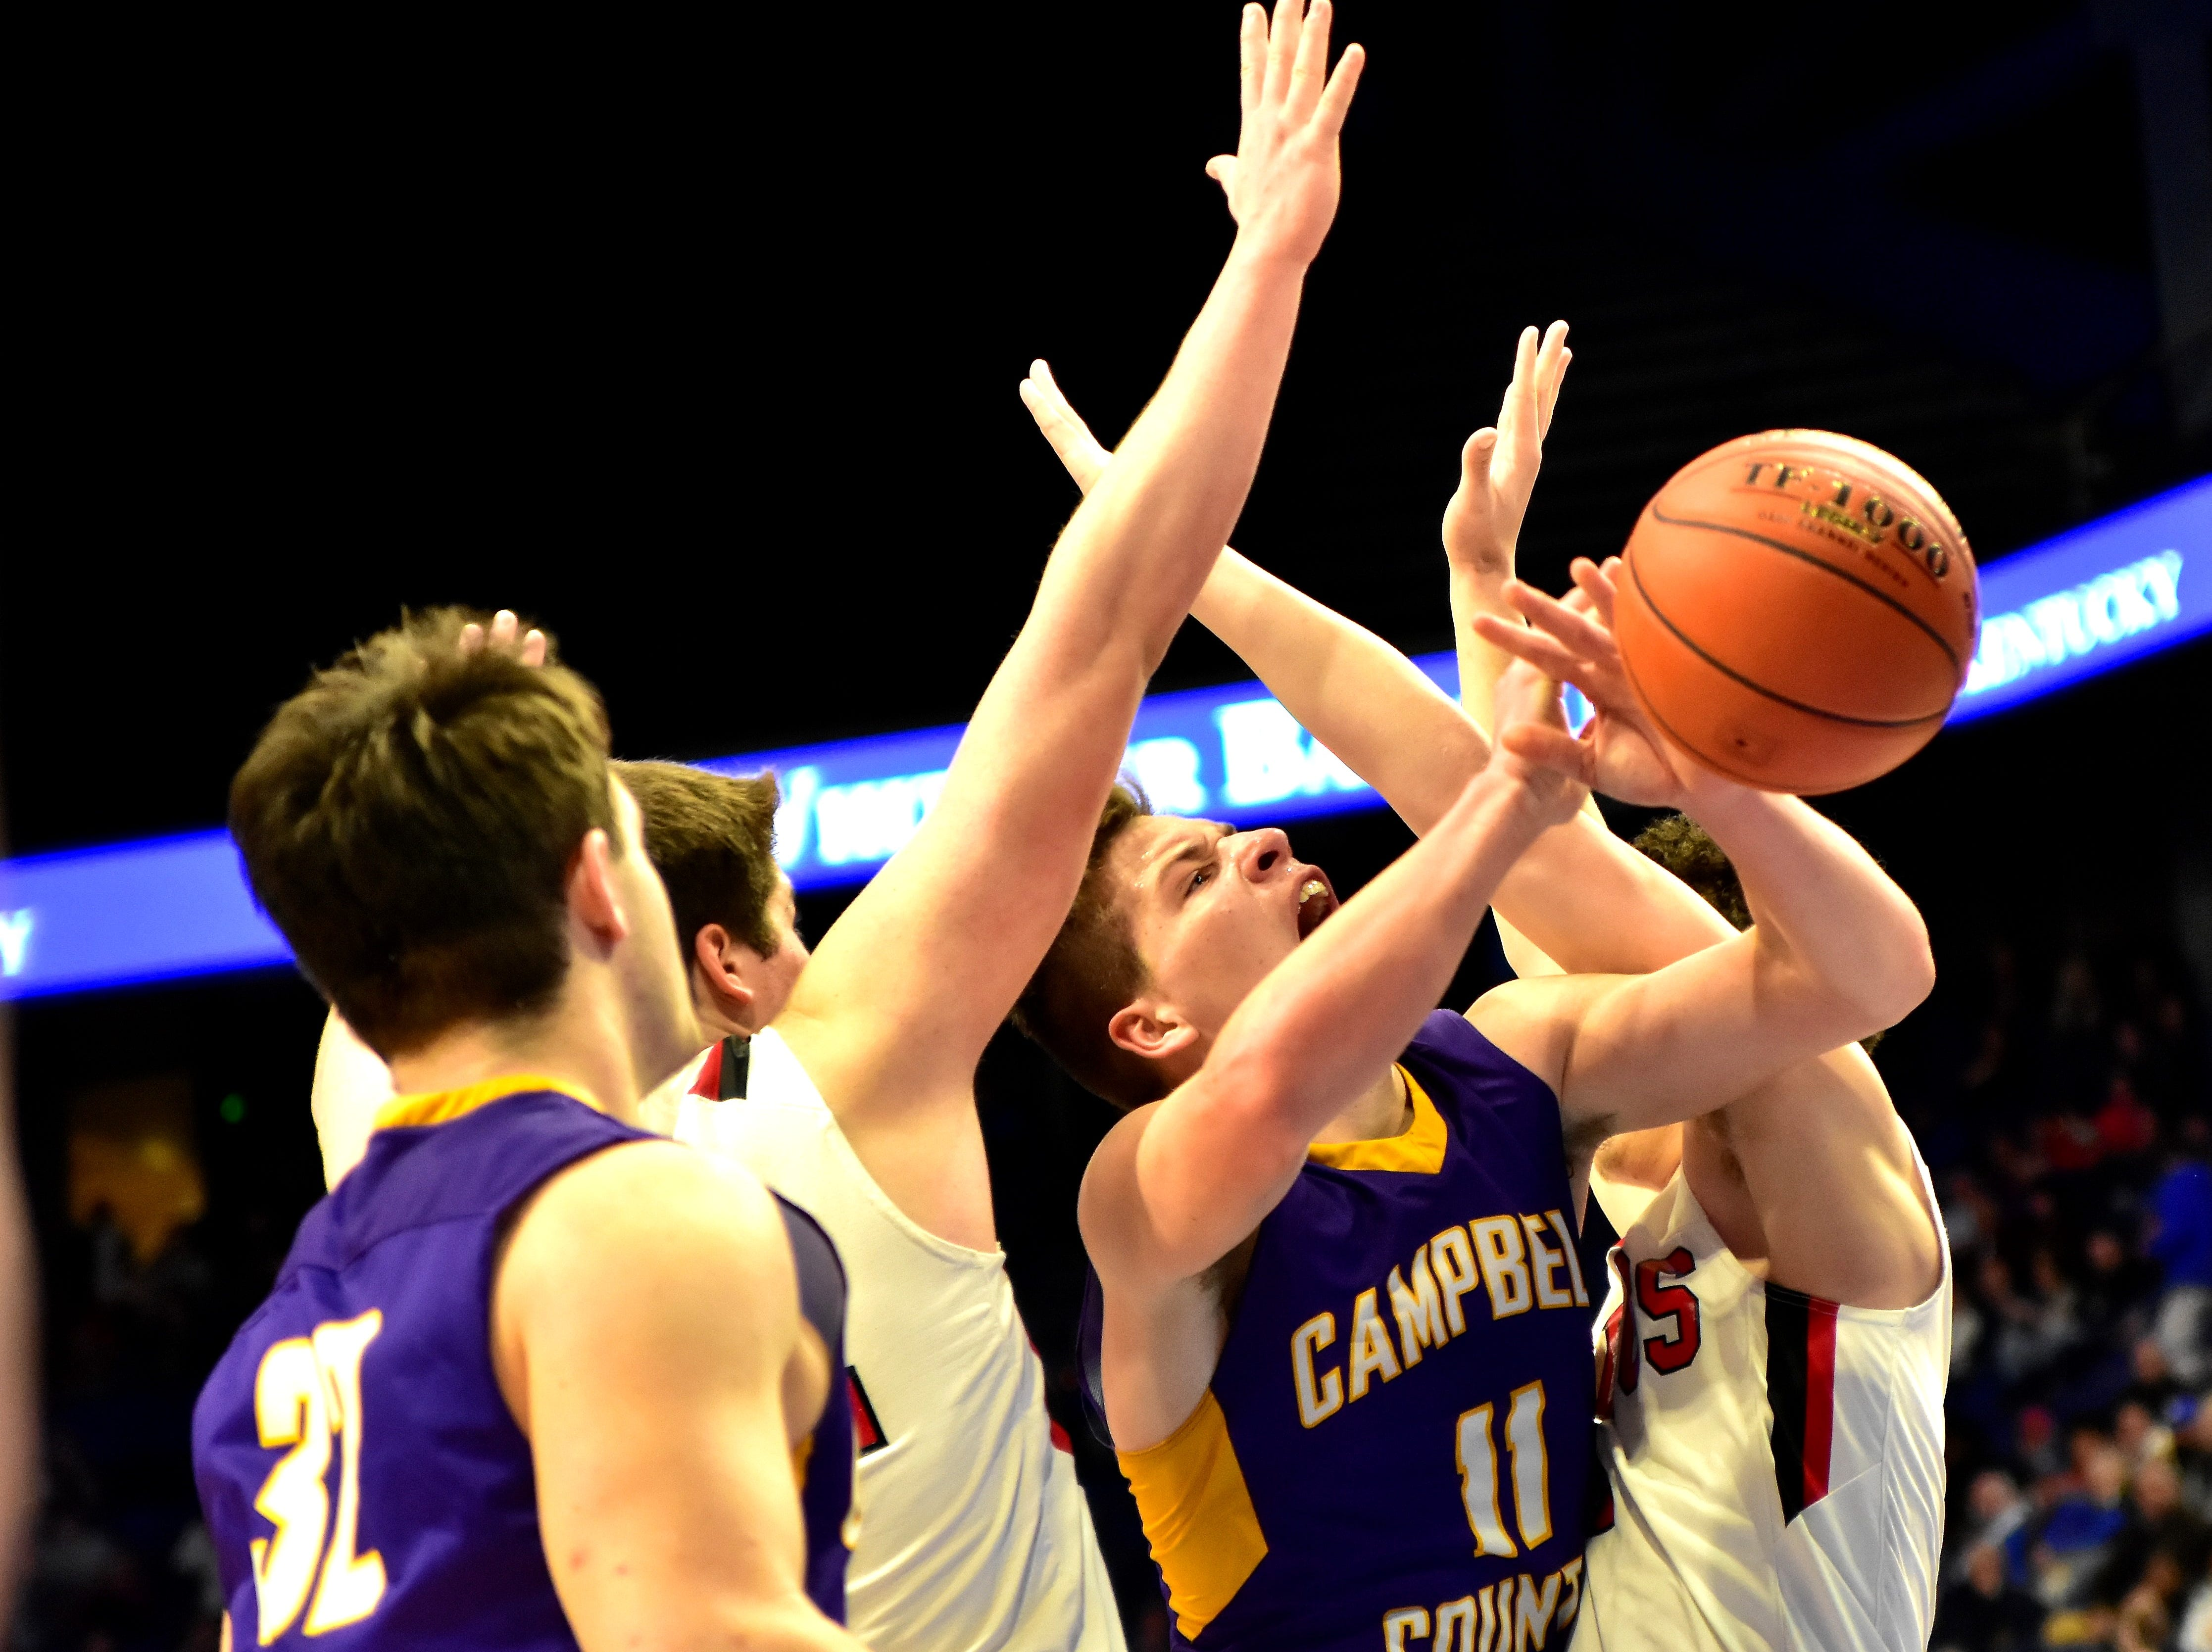 Reid Jolly is fouled on his way to the basket for Campbell County at the KHSAA Sweet 16 Tournament at Rupp Arena in Lexington, KY, March 6, 2019